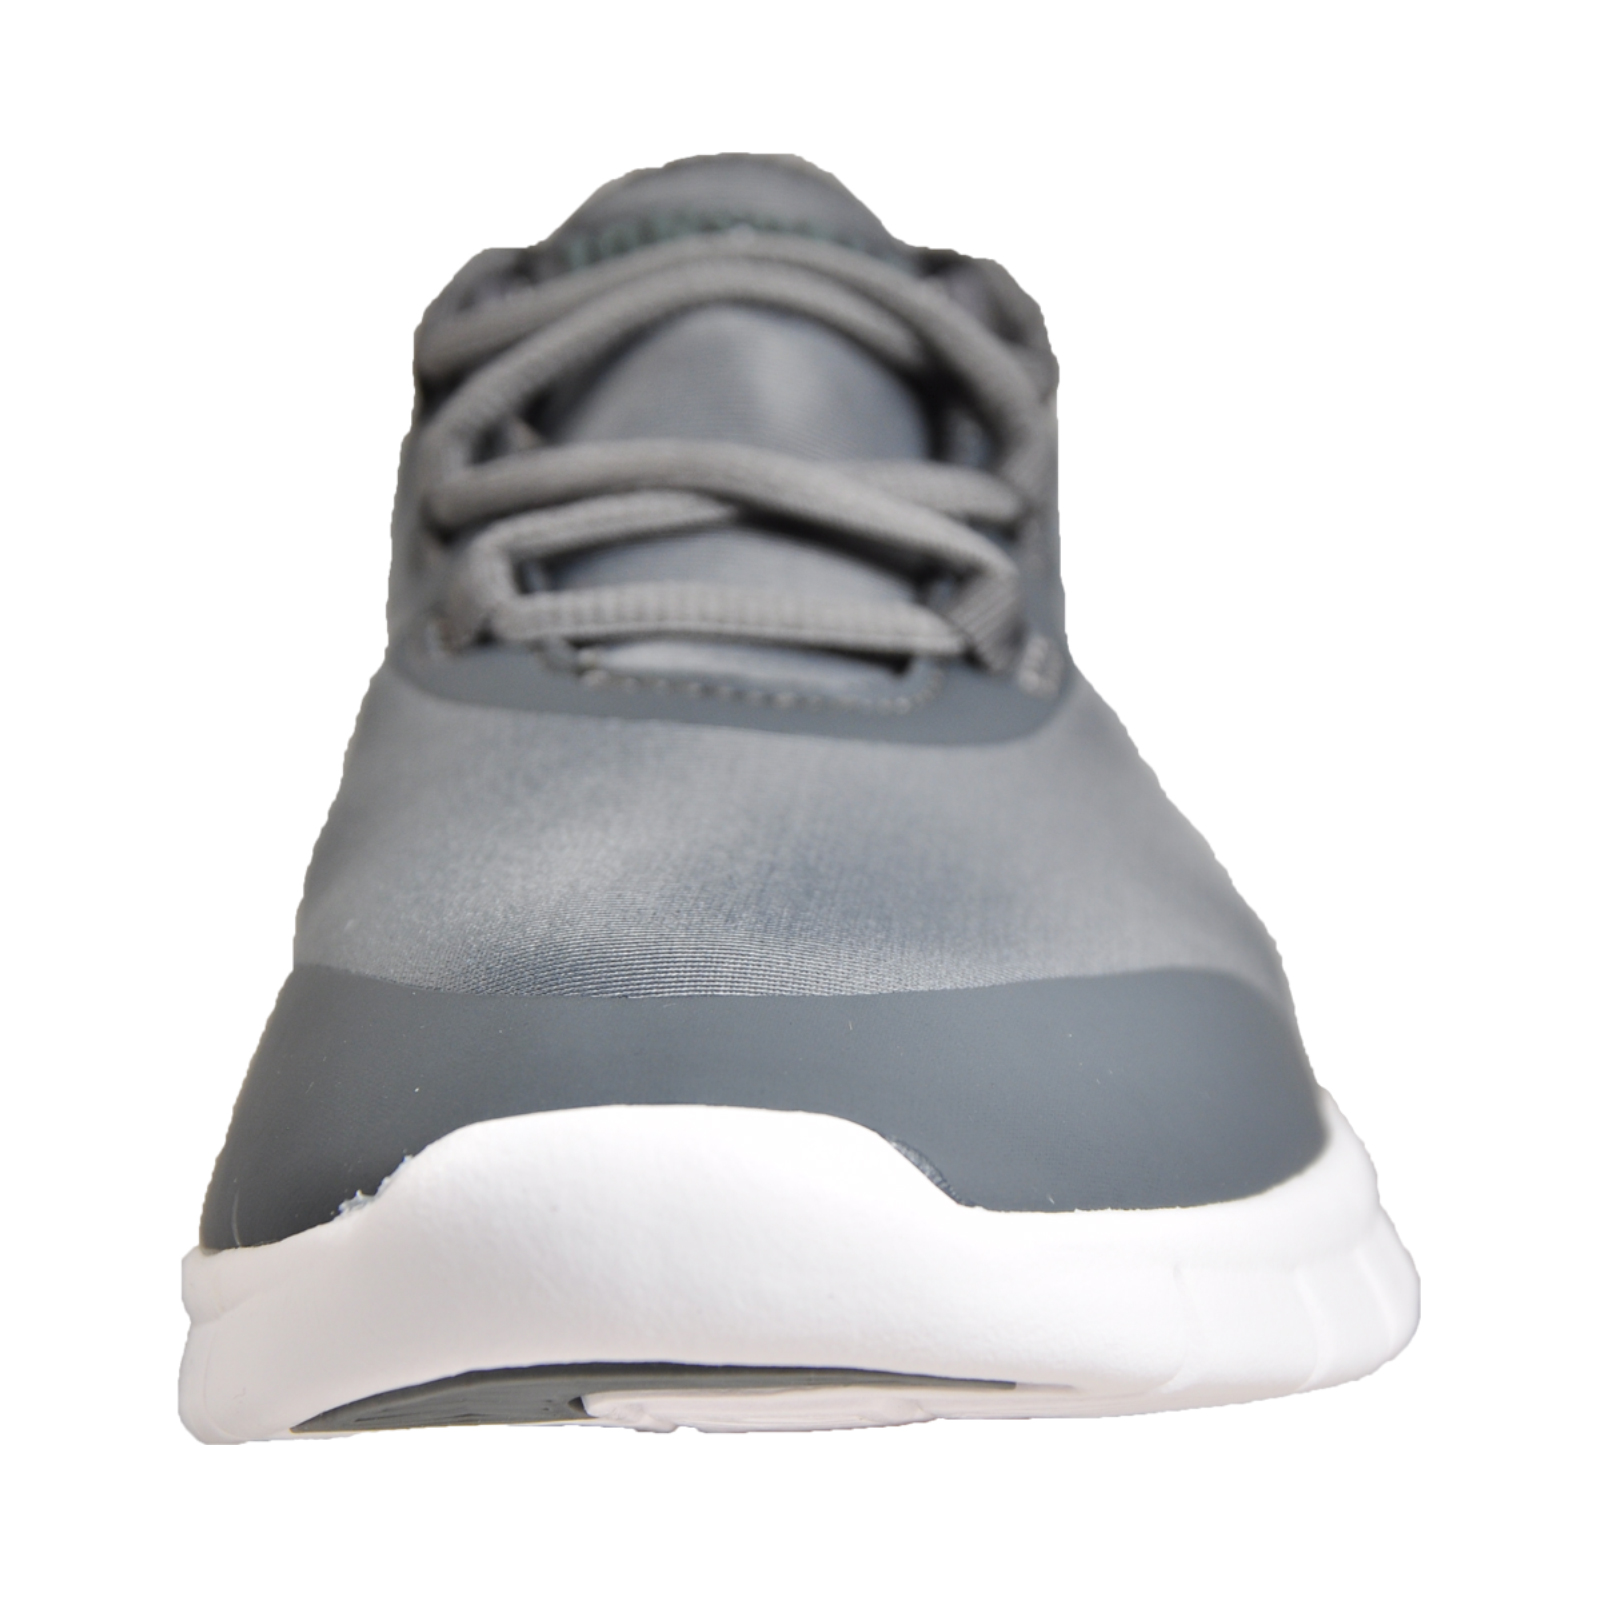 Lonsdale Zambia Men/'s Ultralite Running Shoes Fitness Gym Trainers Grey